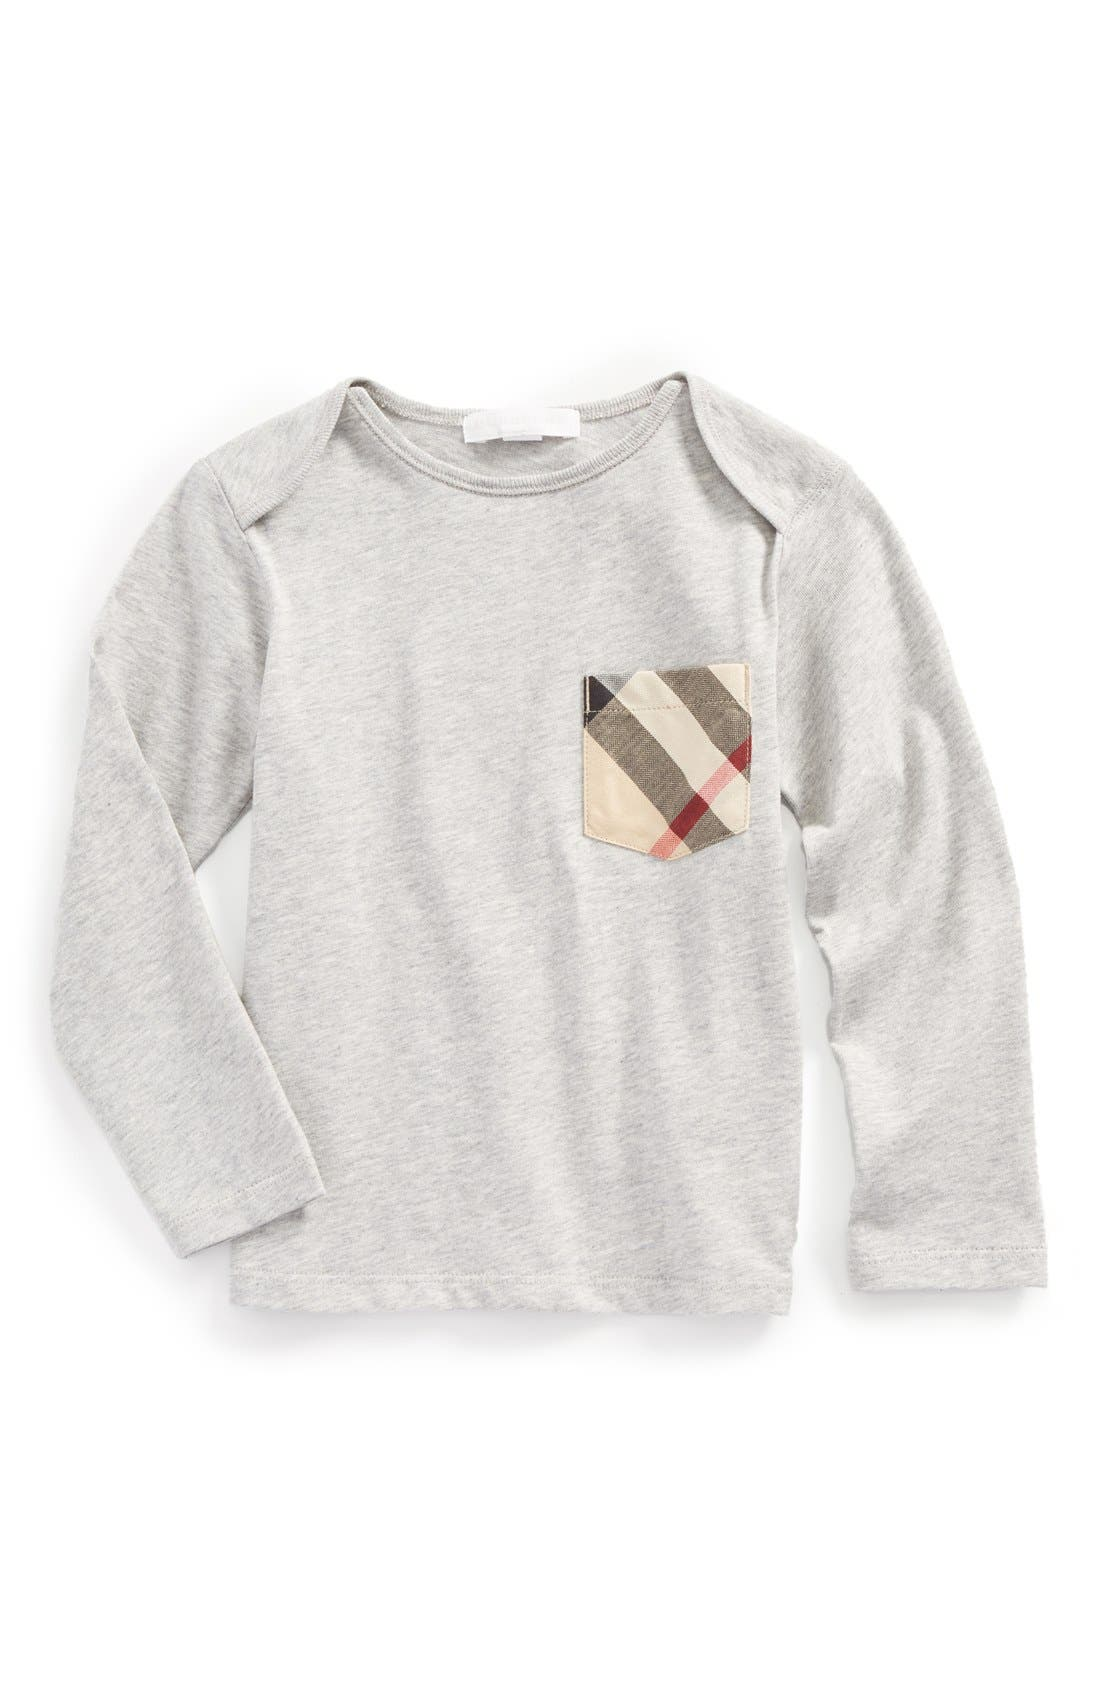 Burberry 'Callum' Check Print Chest Pocket T-Shirt (Toddler Boys)